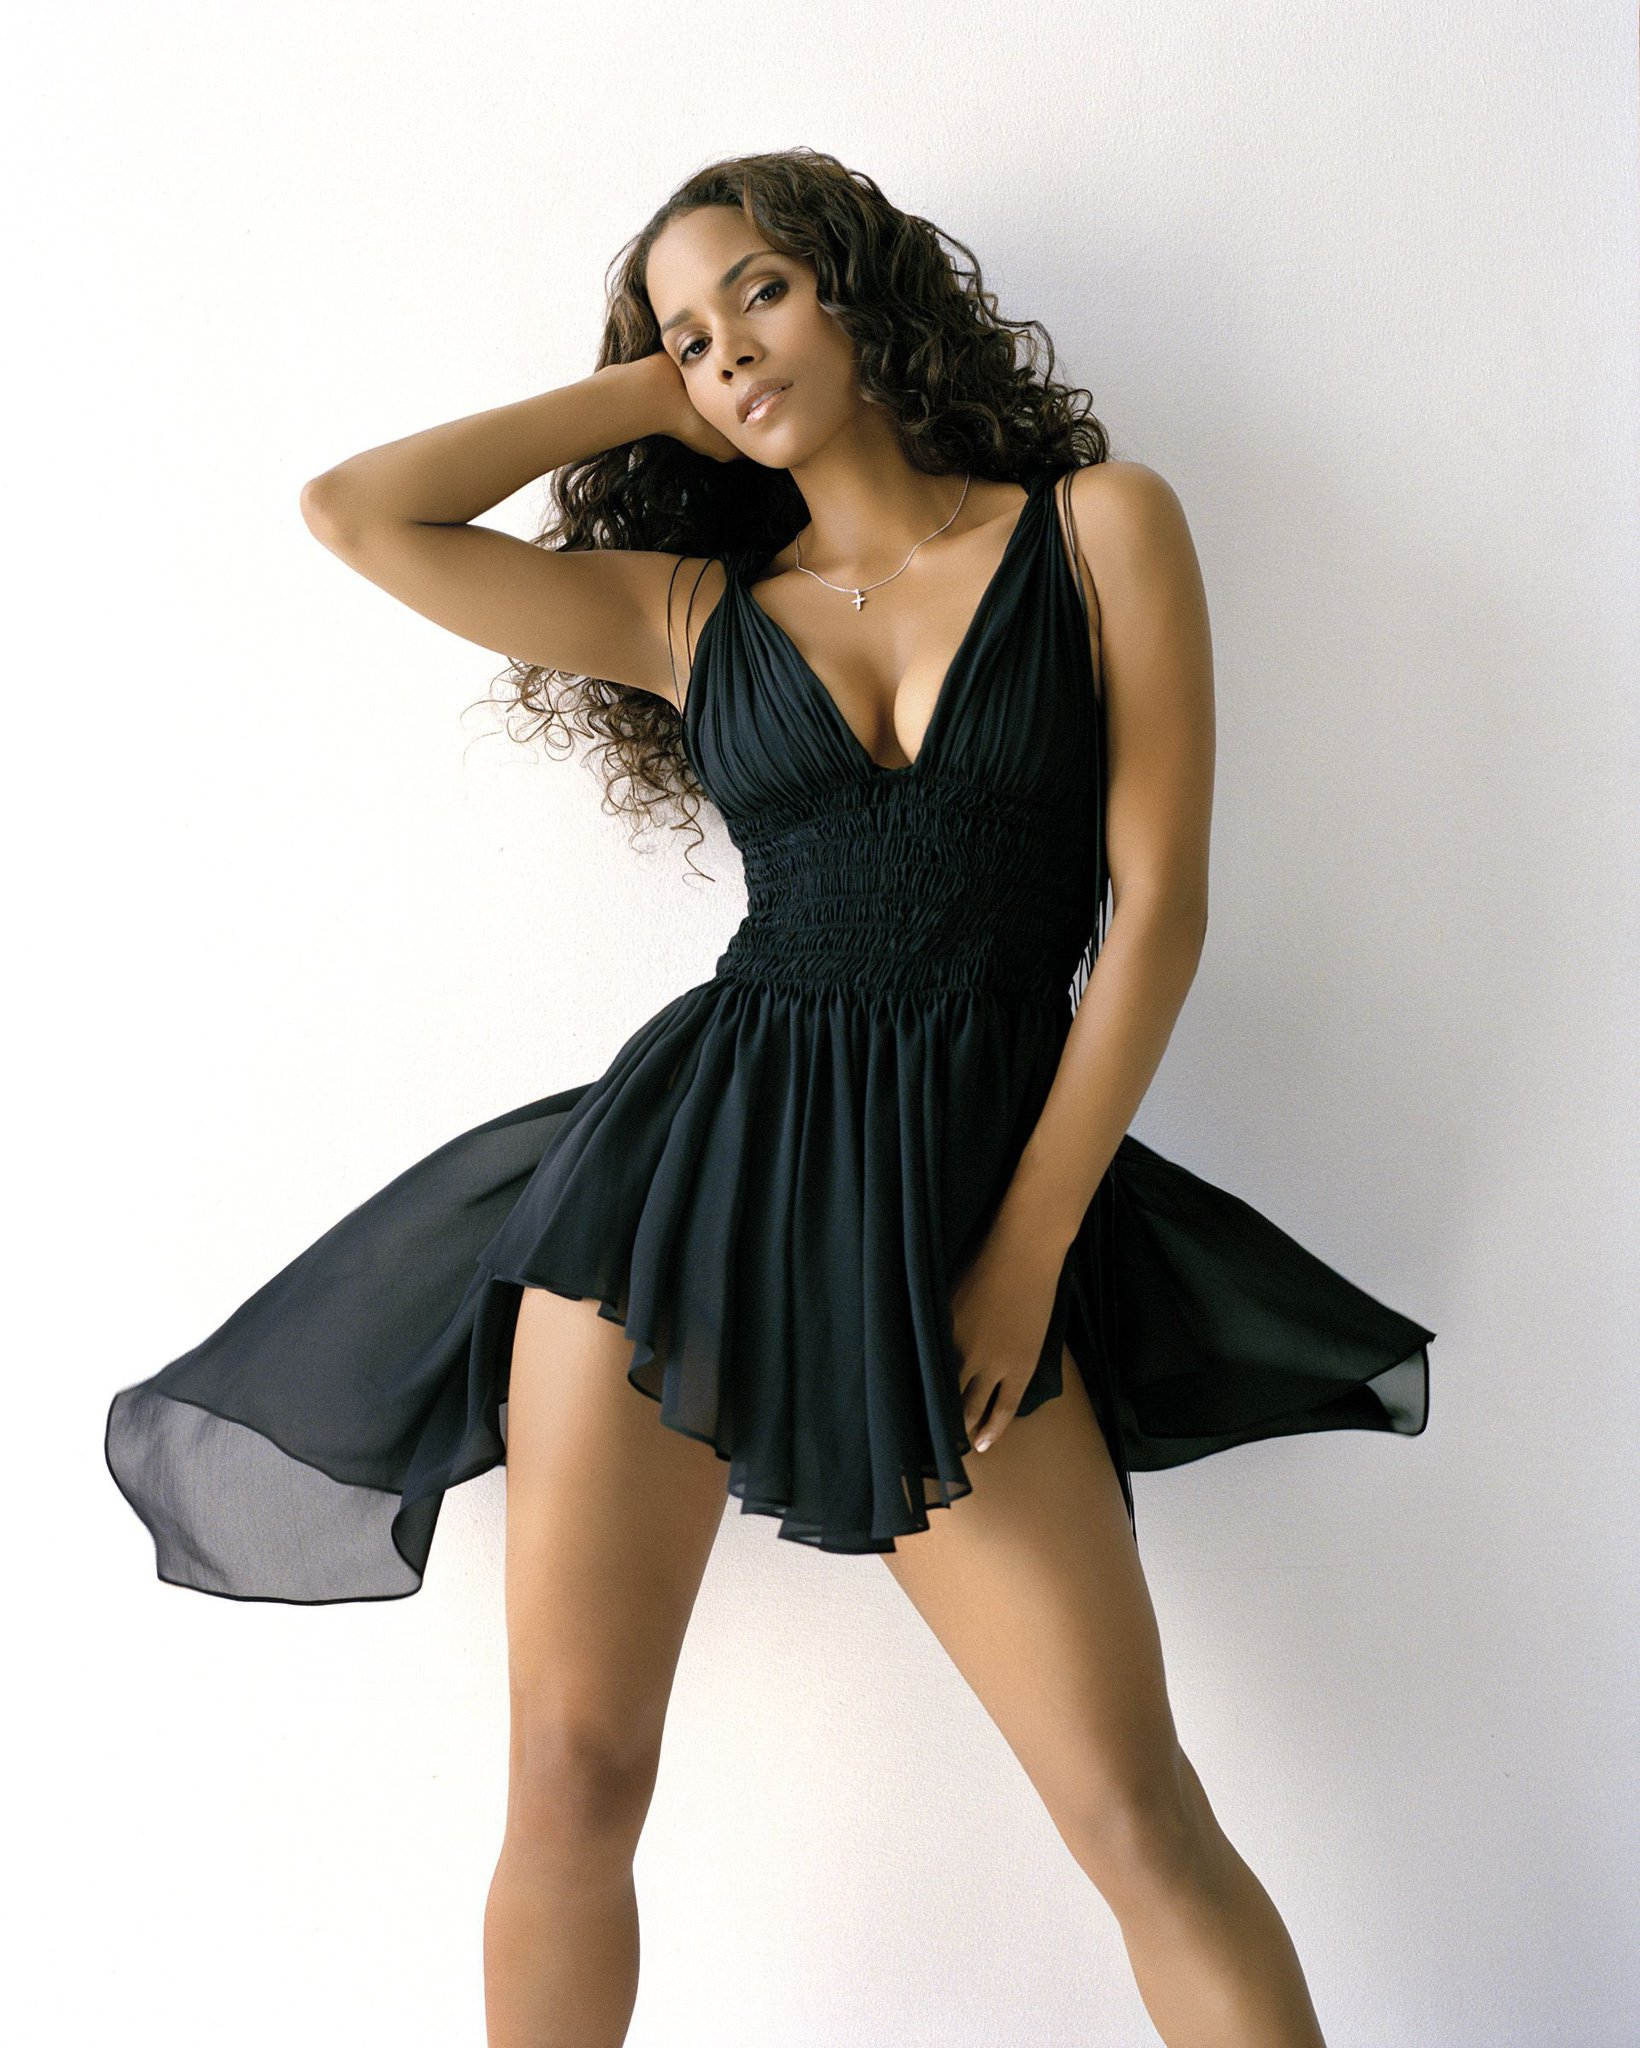 Halle Berry looks hot in this back cocktail dress #dress #black #halle #berry #hot https://t.co/6RGZ7pQNkY